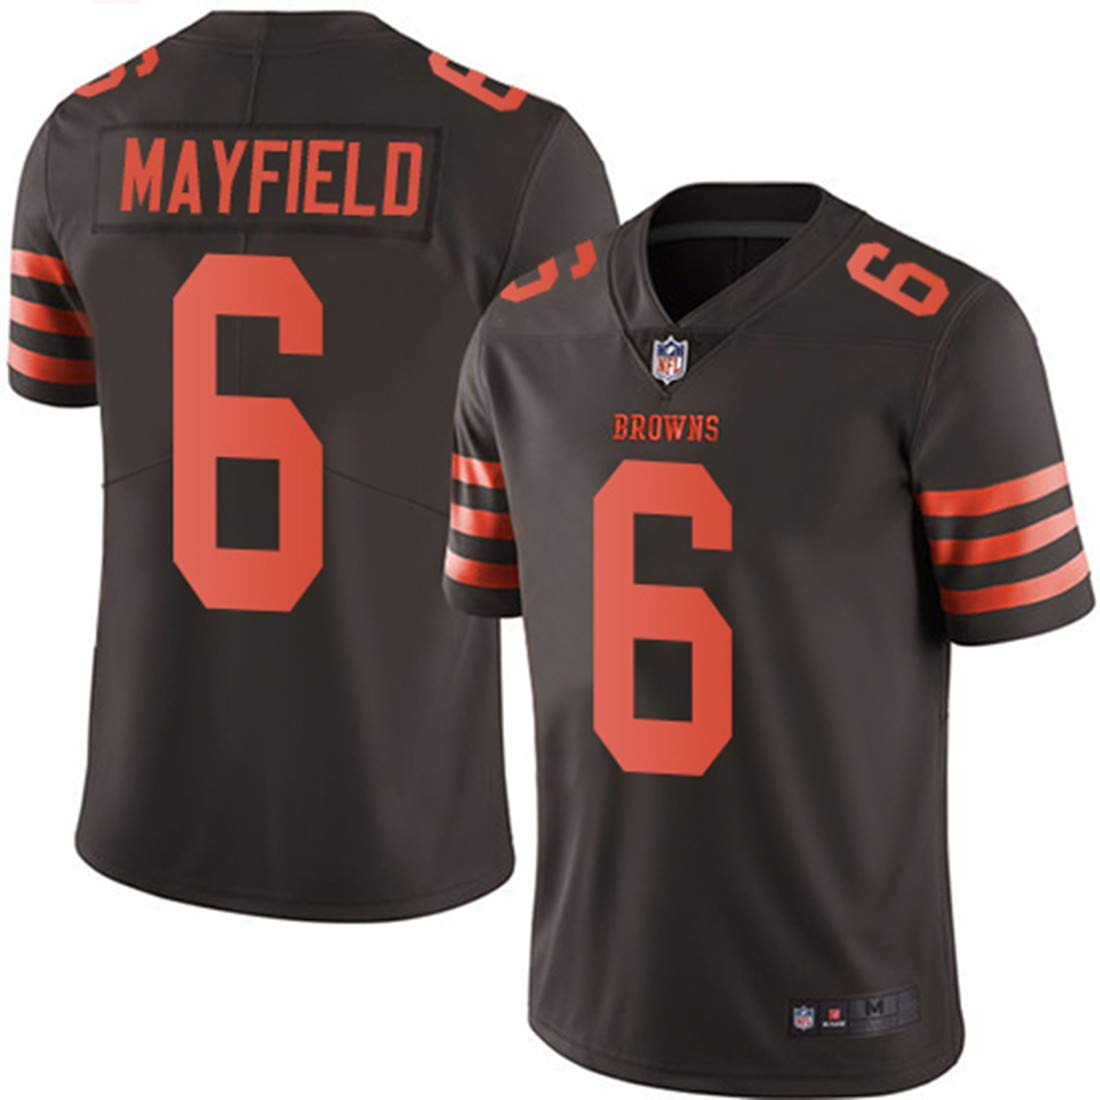 pretty nice 8568e c016a Men's Cleveland Browns #6 Baker Mayfield Brown Embroidered Name & Number  Jersey